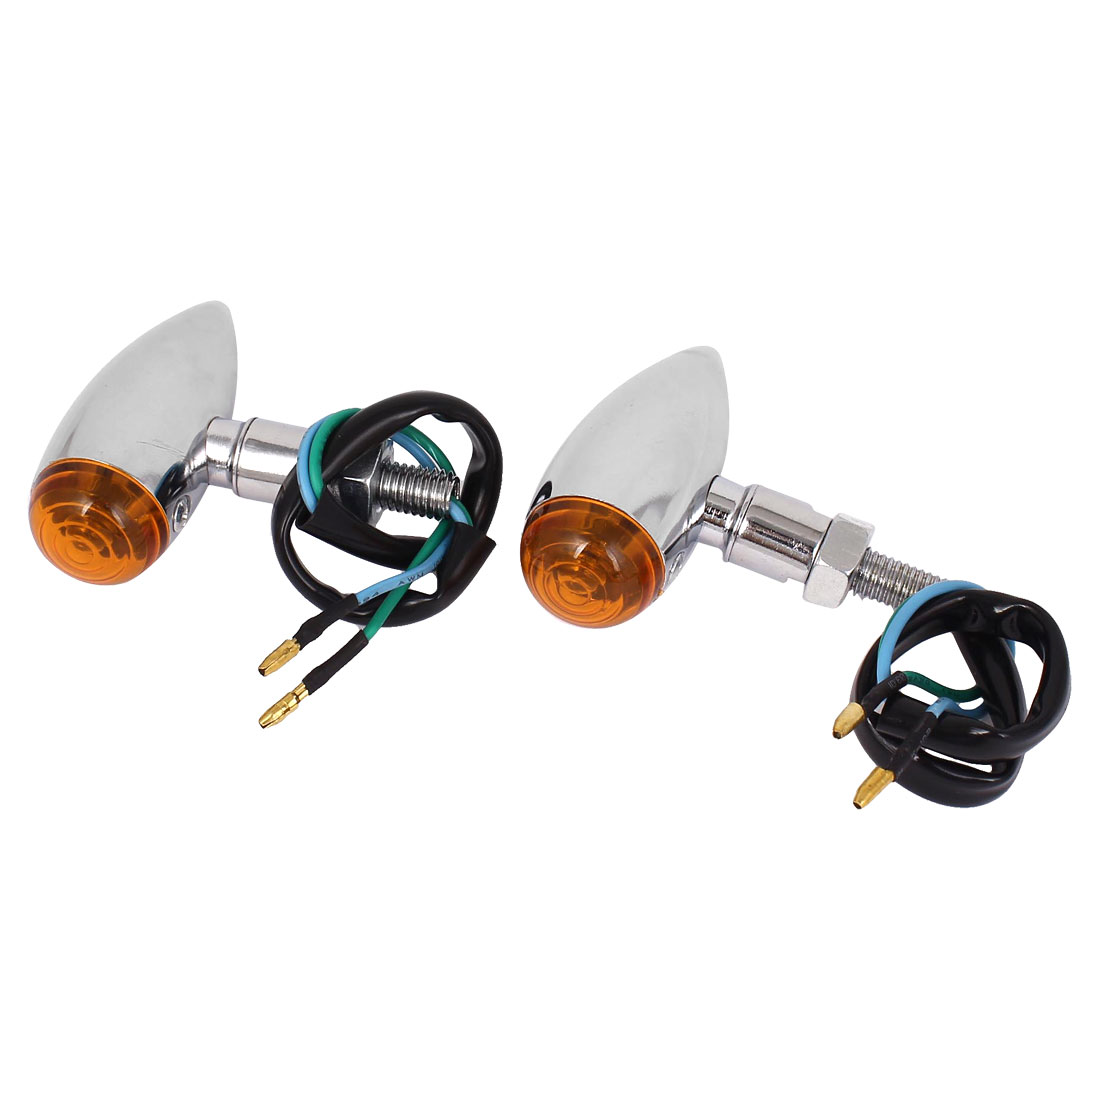 2 Pcs Motorcycle Metal Chrome Turn Signals Lights Blinkers Amber Indicators For Victory Hammer